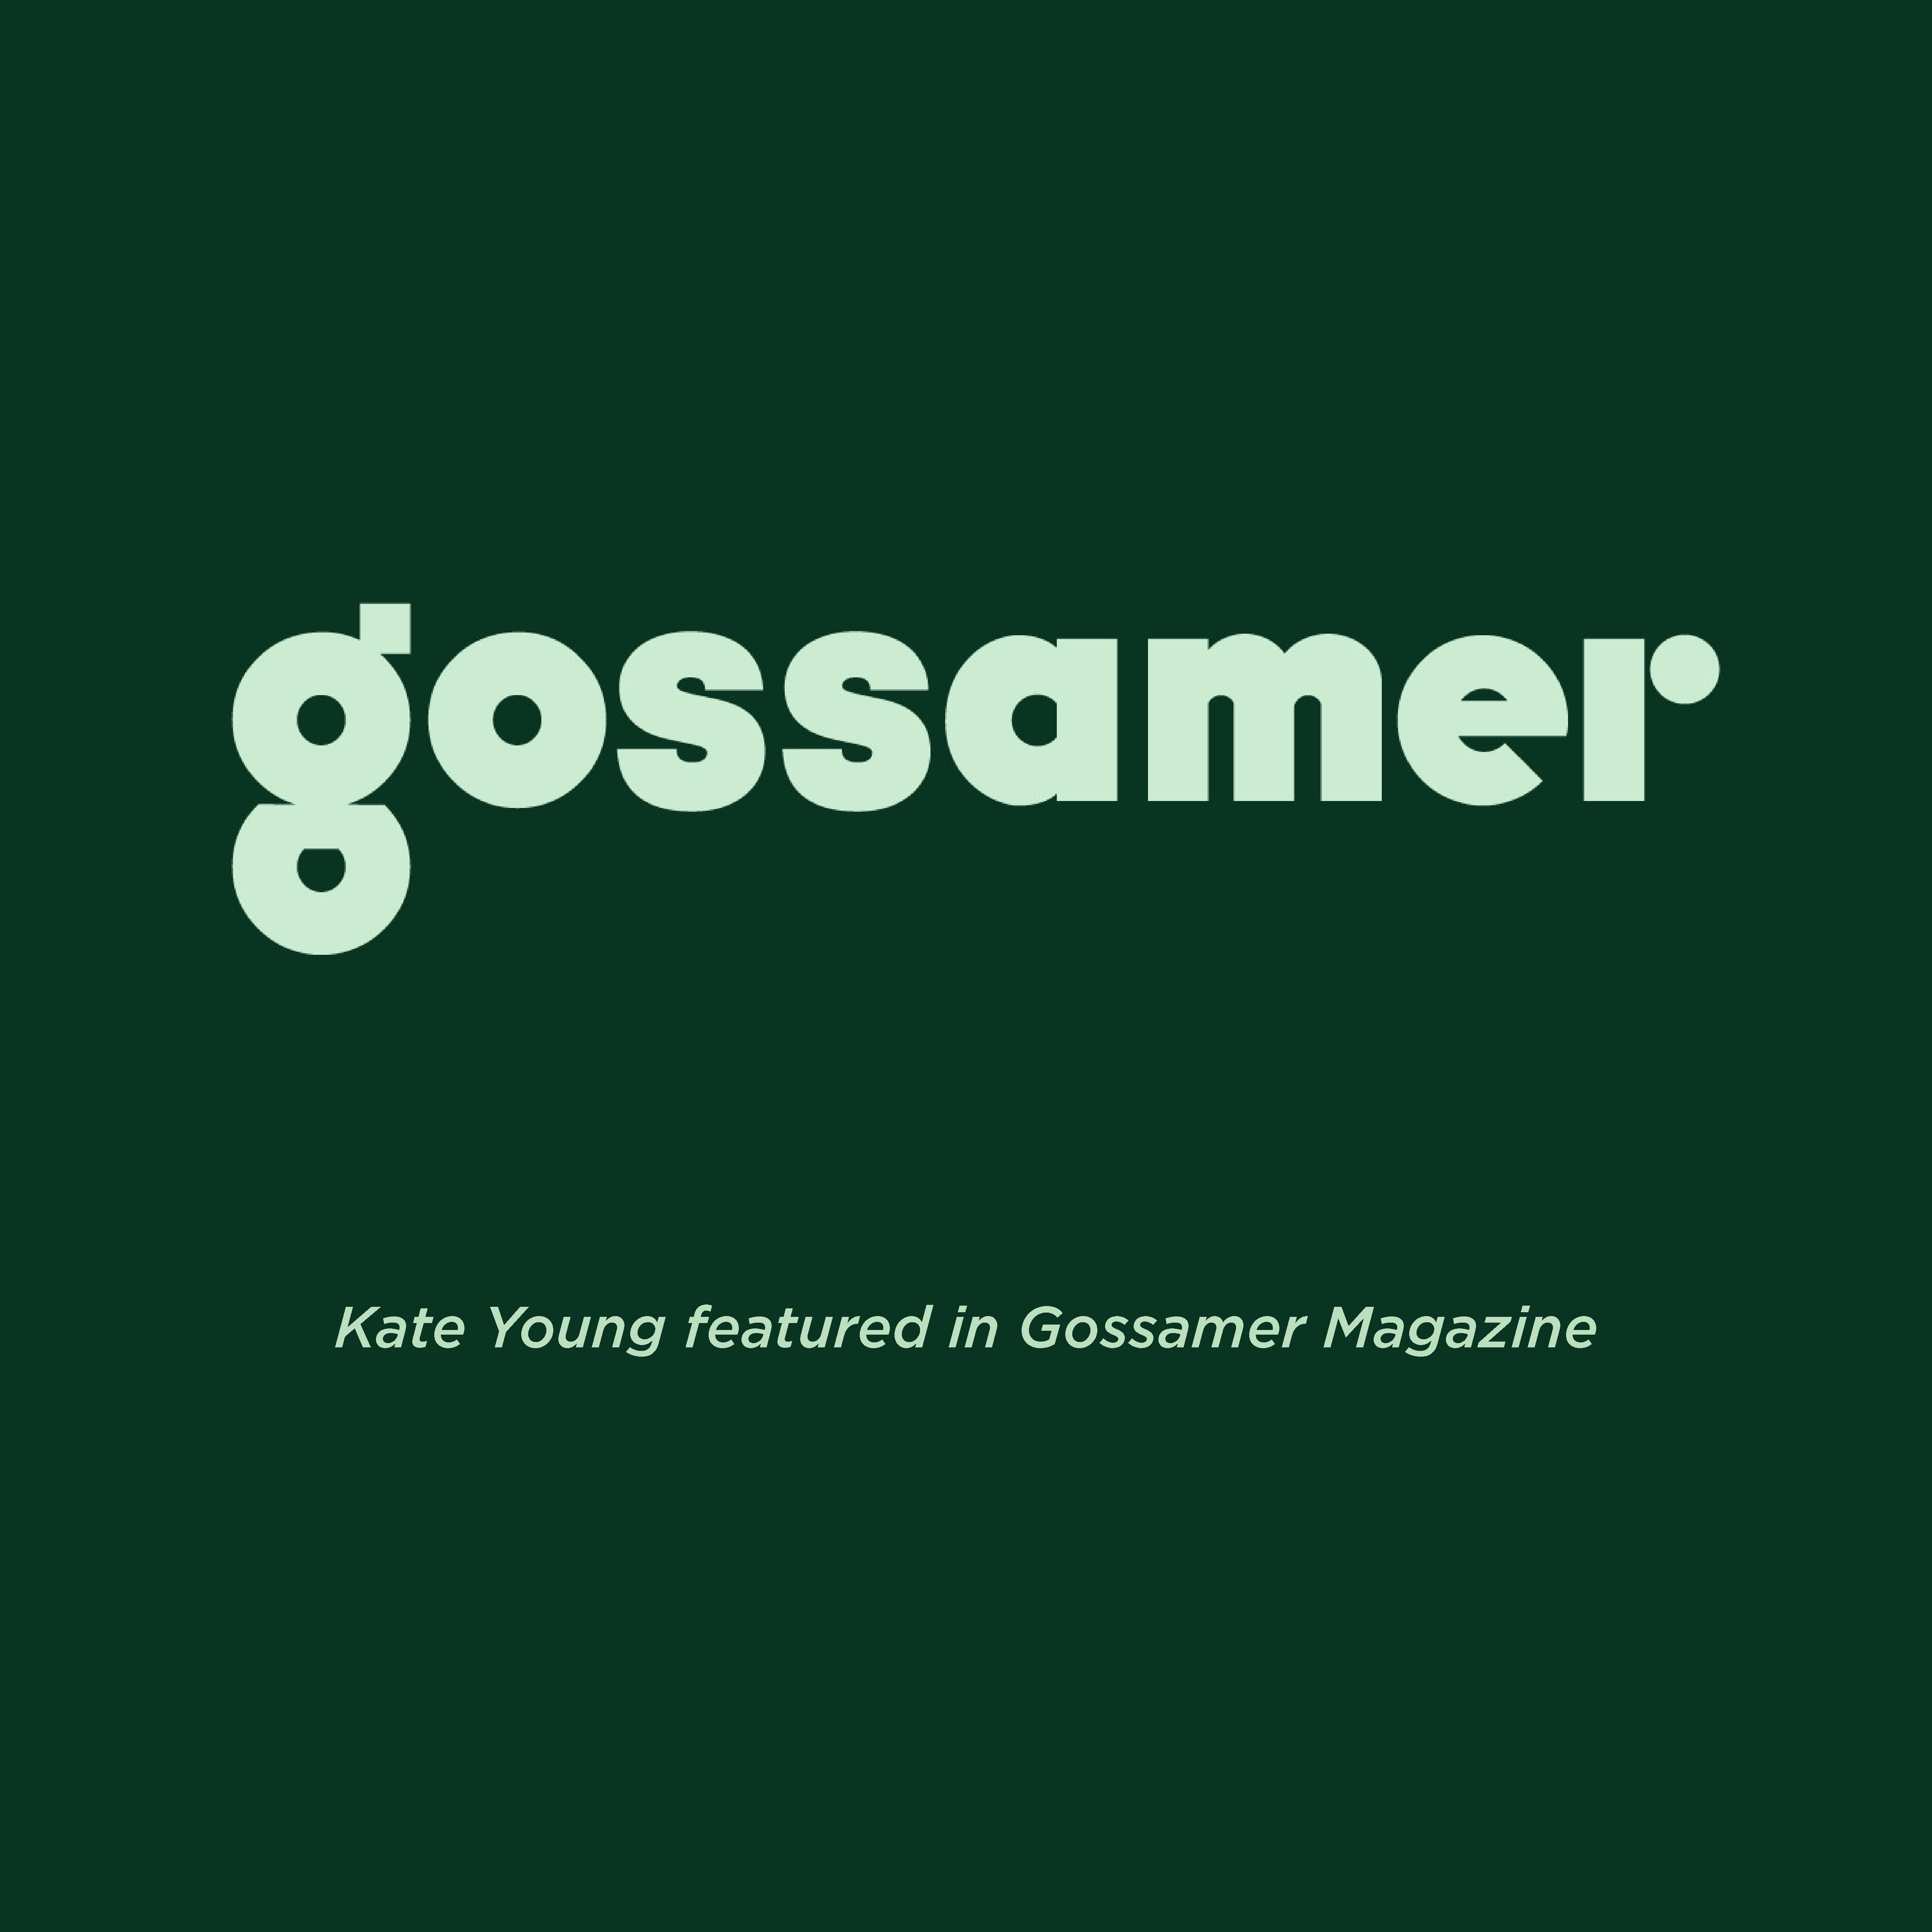 KATE YOUNG AND KATE YOUNG FOR TURA FEATURED IN GOSSAMER MAGAZINE